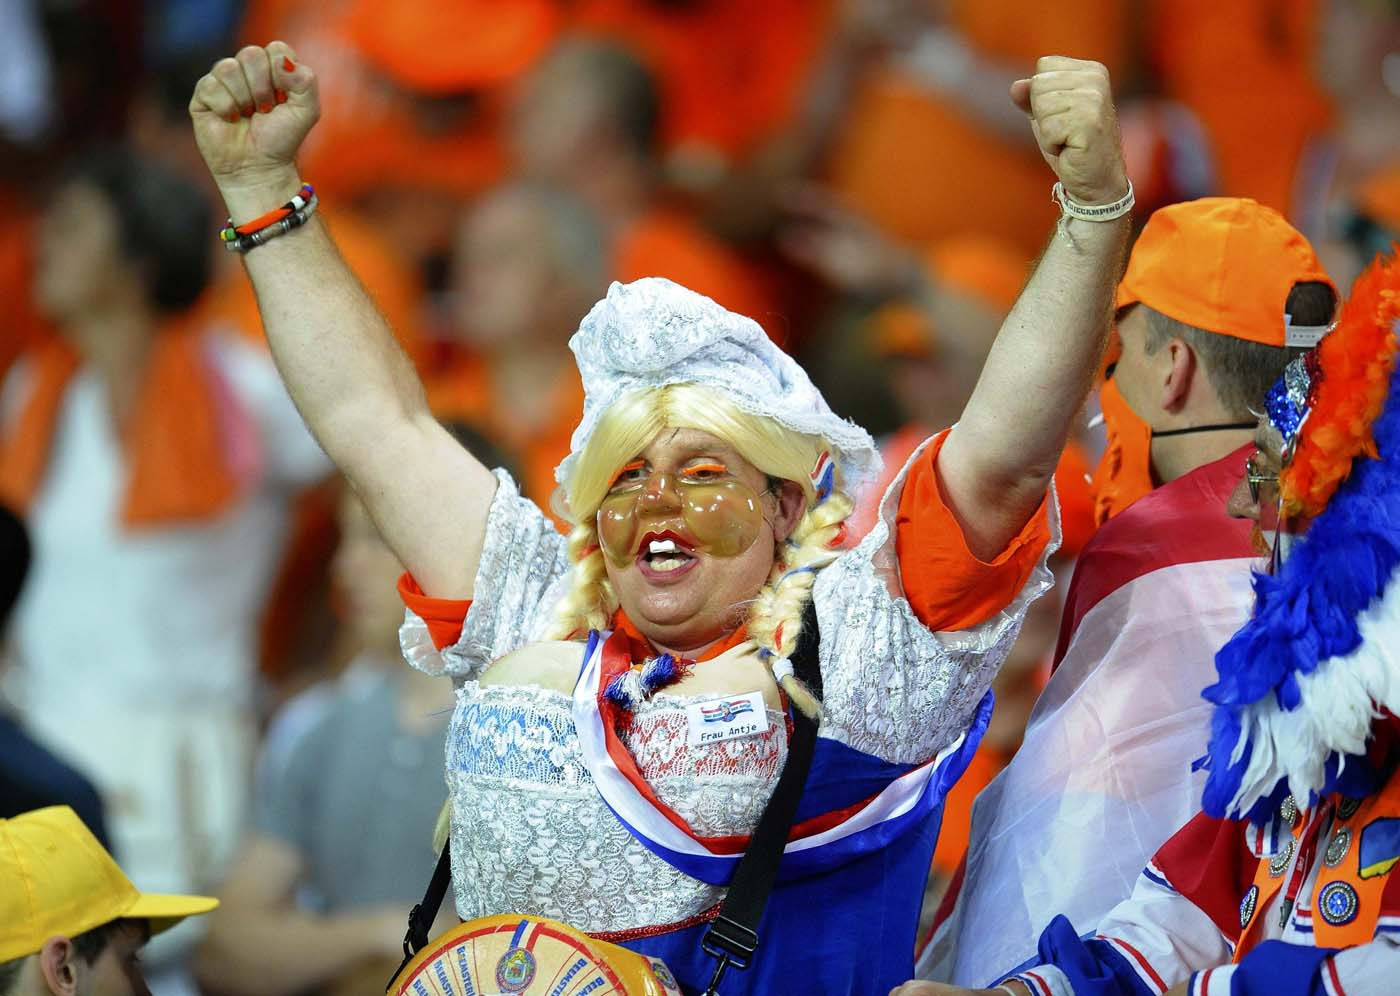 A Netherlands' fan cheers before their Group B Euro 2012 soccer match against Germany at the Metalist stadium in Kharkiv June 13, 2012. (Felix Ordonez/Reuters)